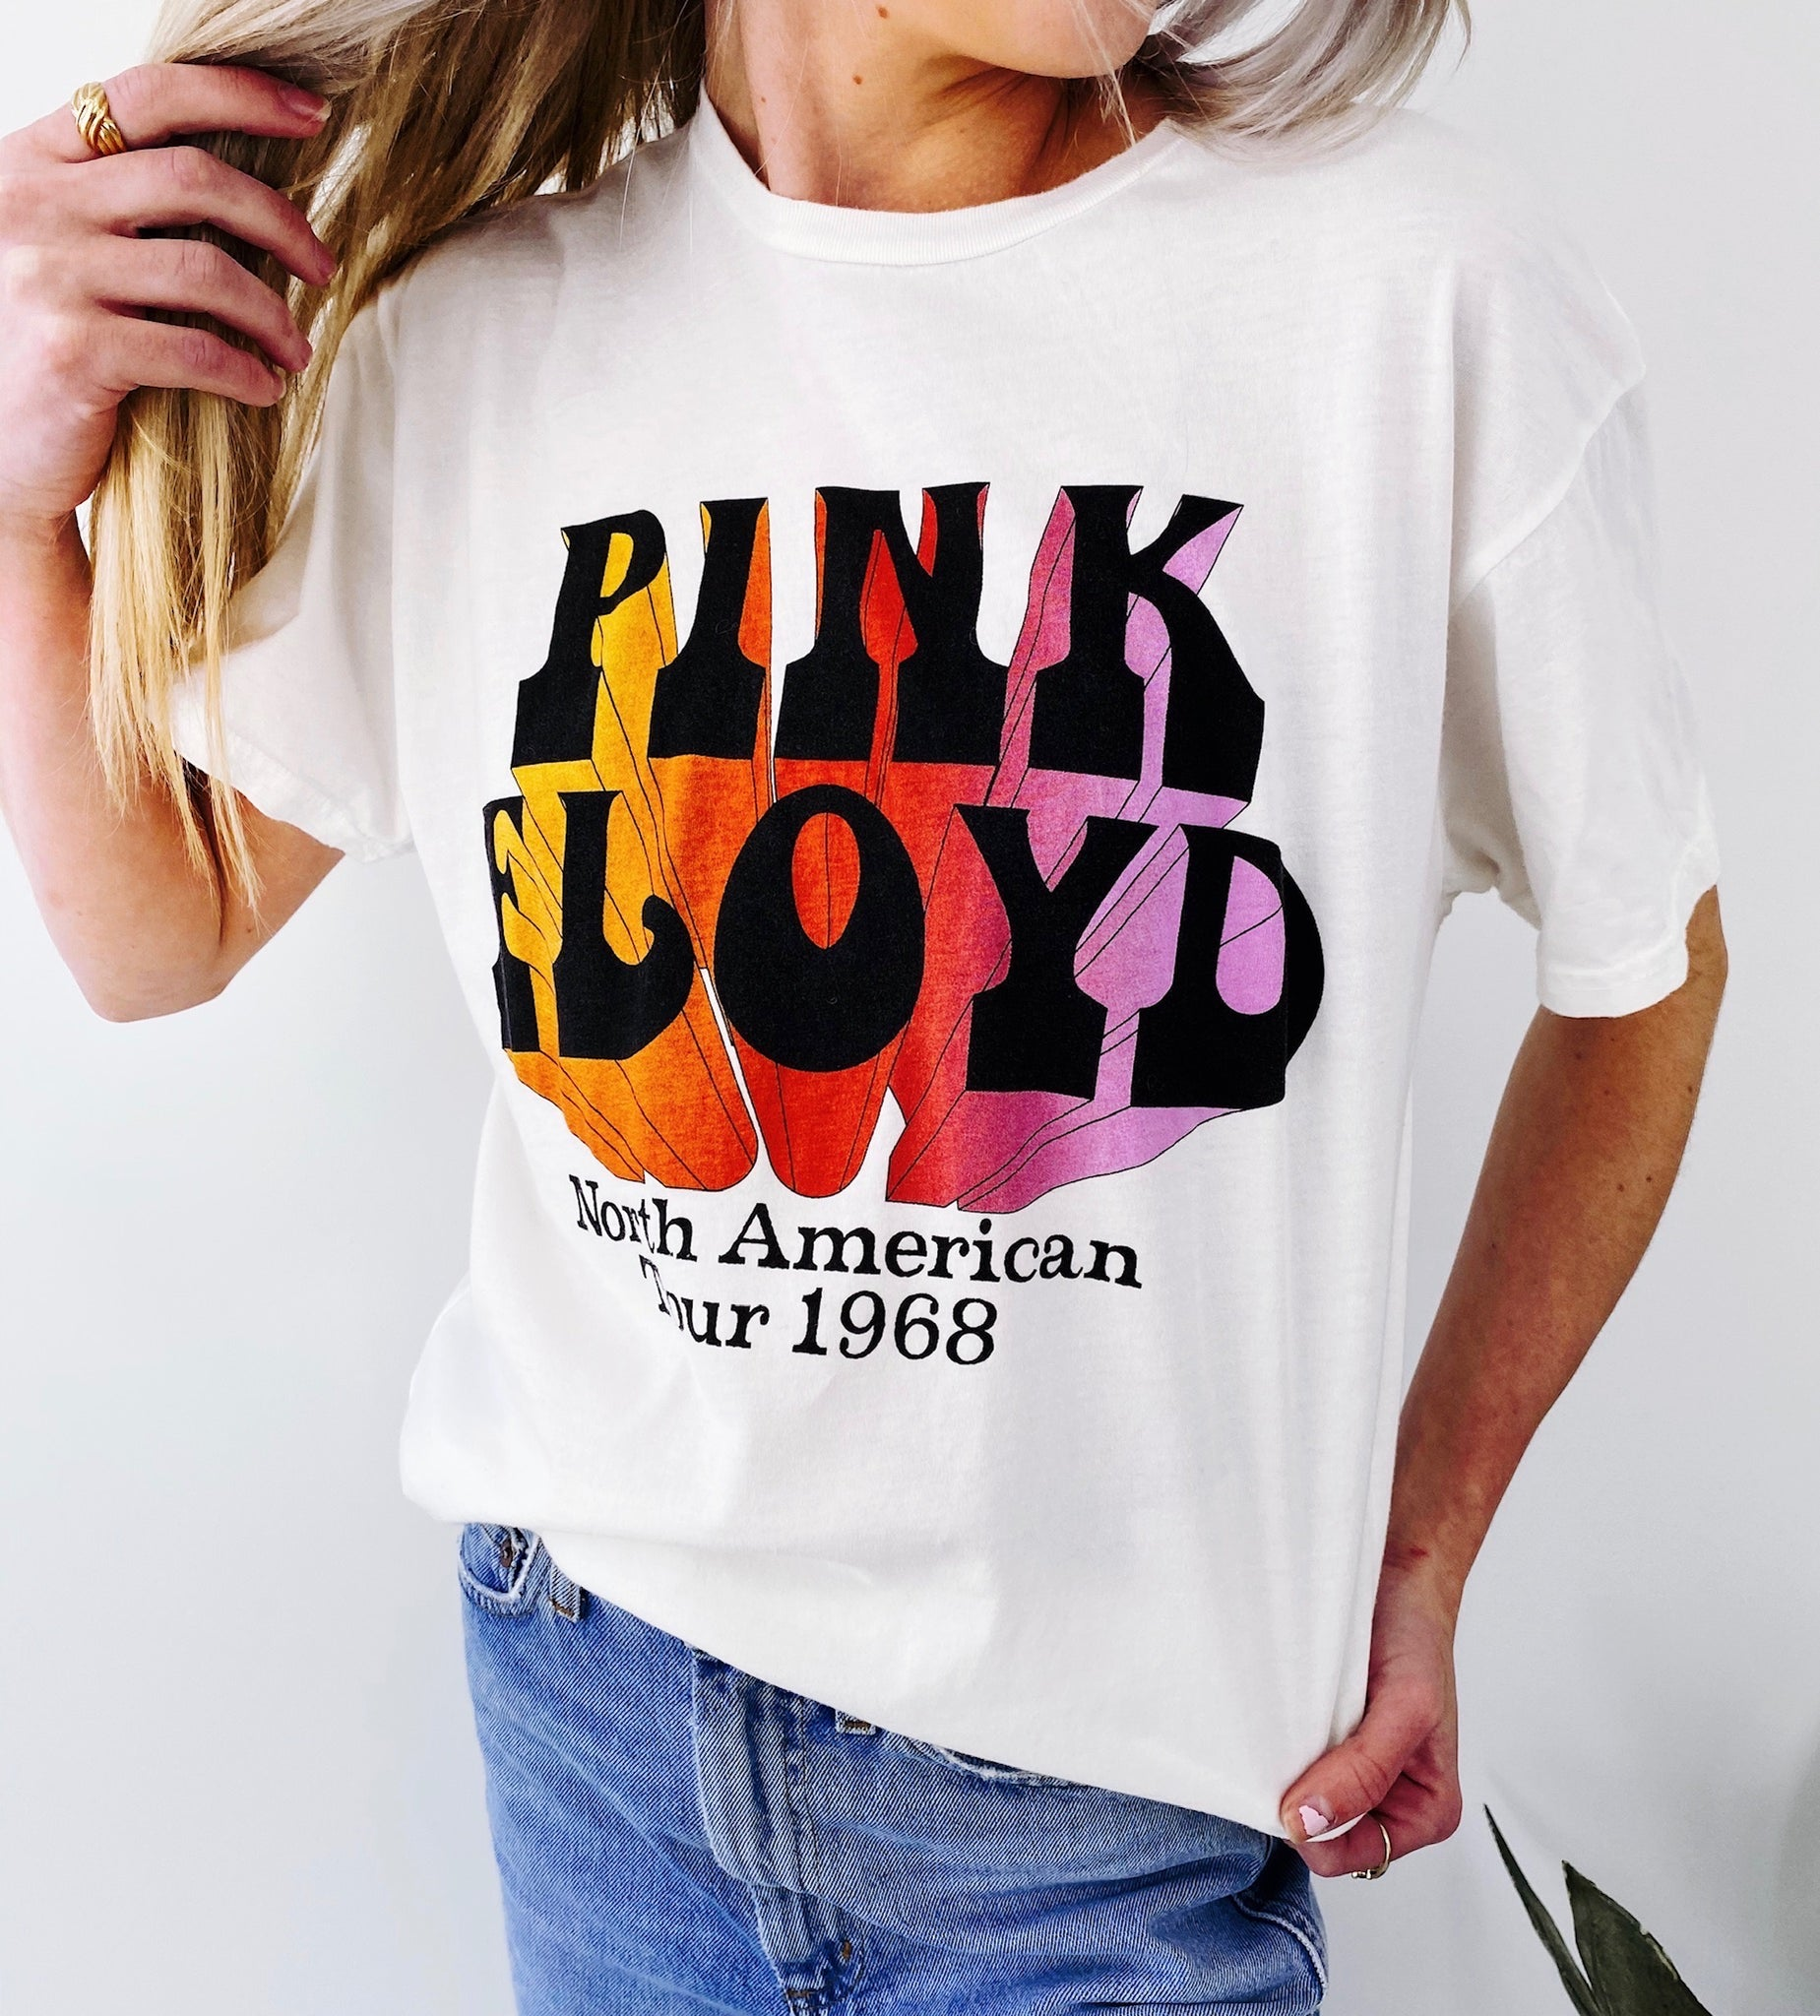 Pink Floyd North America Tour Tee 1968